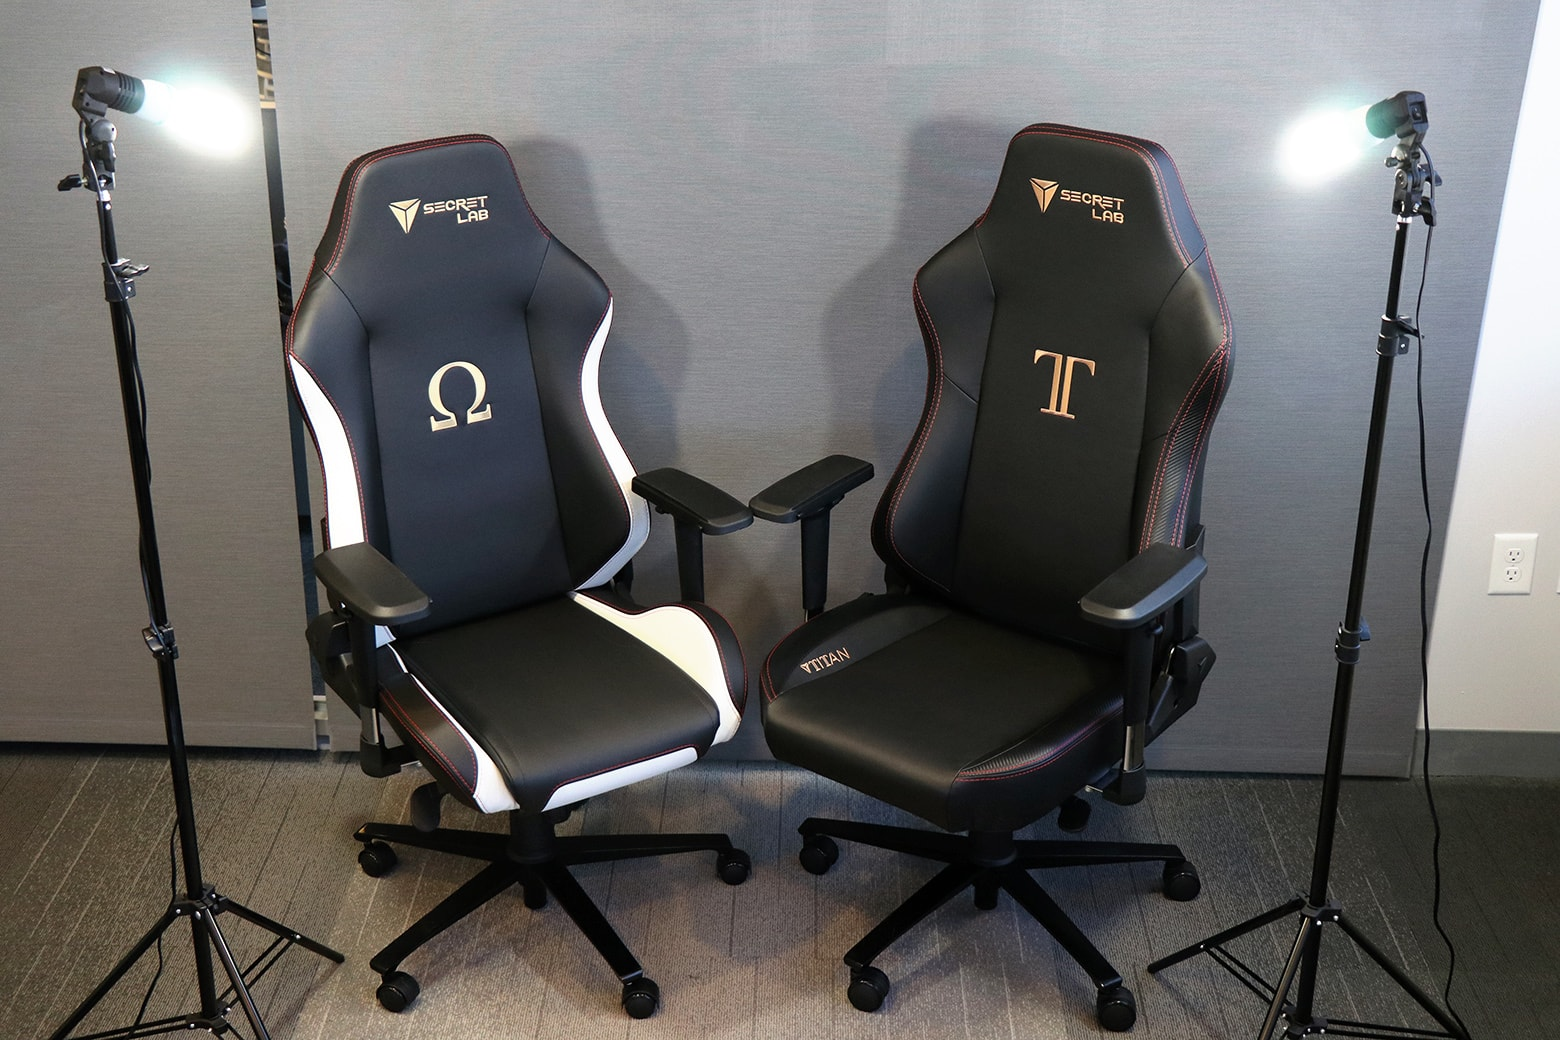 Astounding Hands On With Secretlab Gaming Chairs Omega And Titan Short Links Chair Design For Home Short Linksinfo